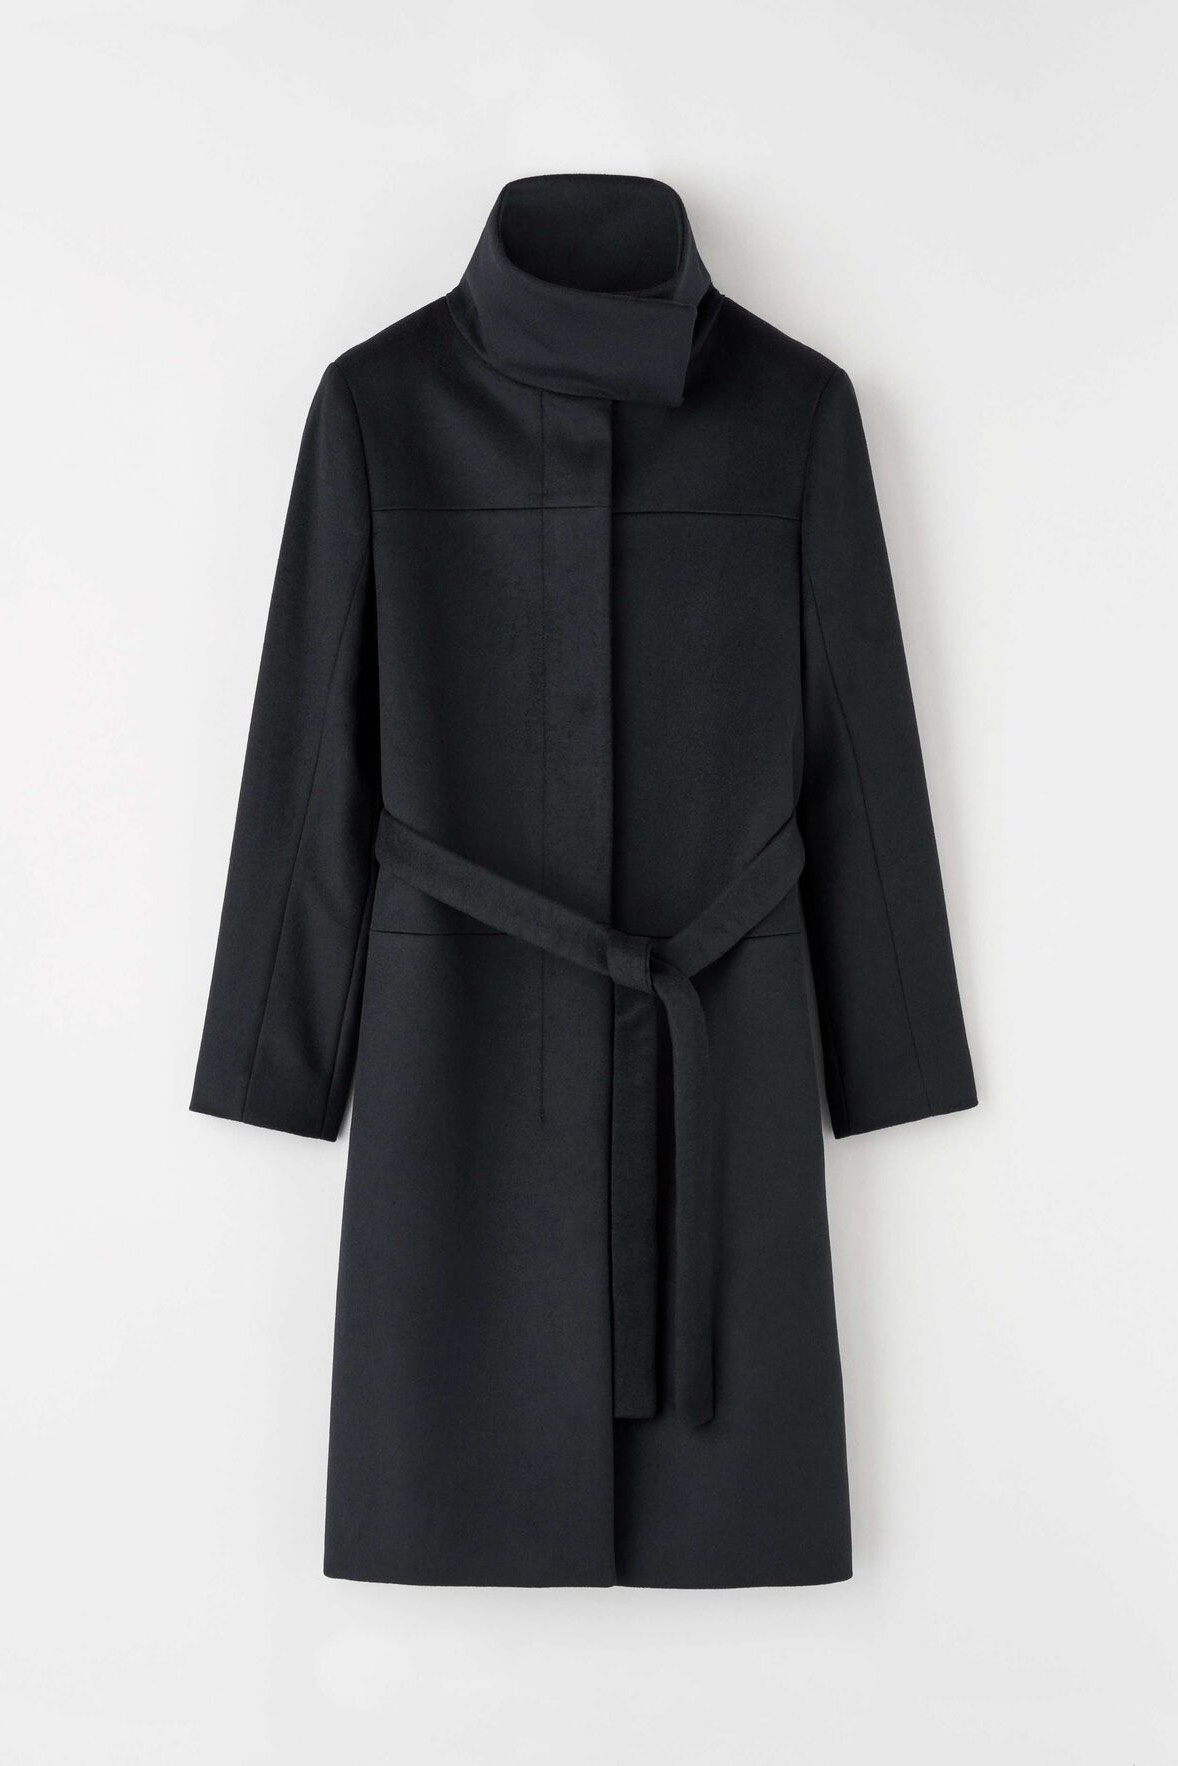 Cori Coat - Black-6